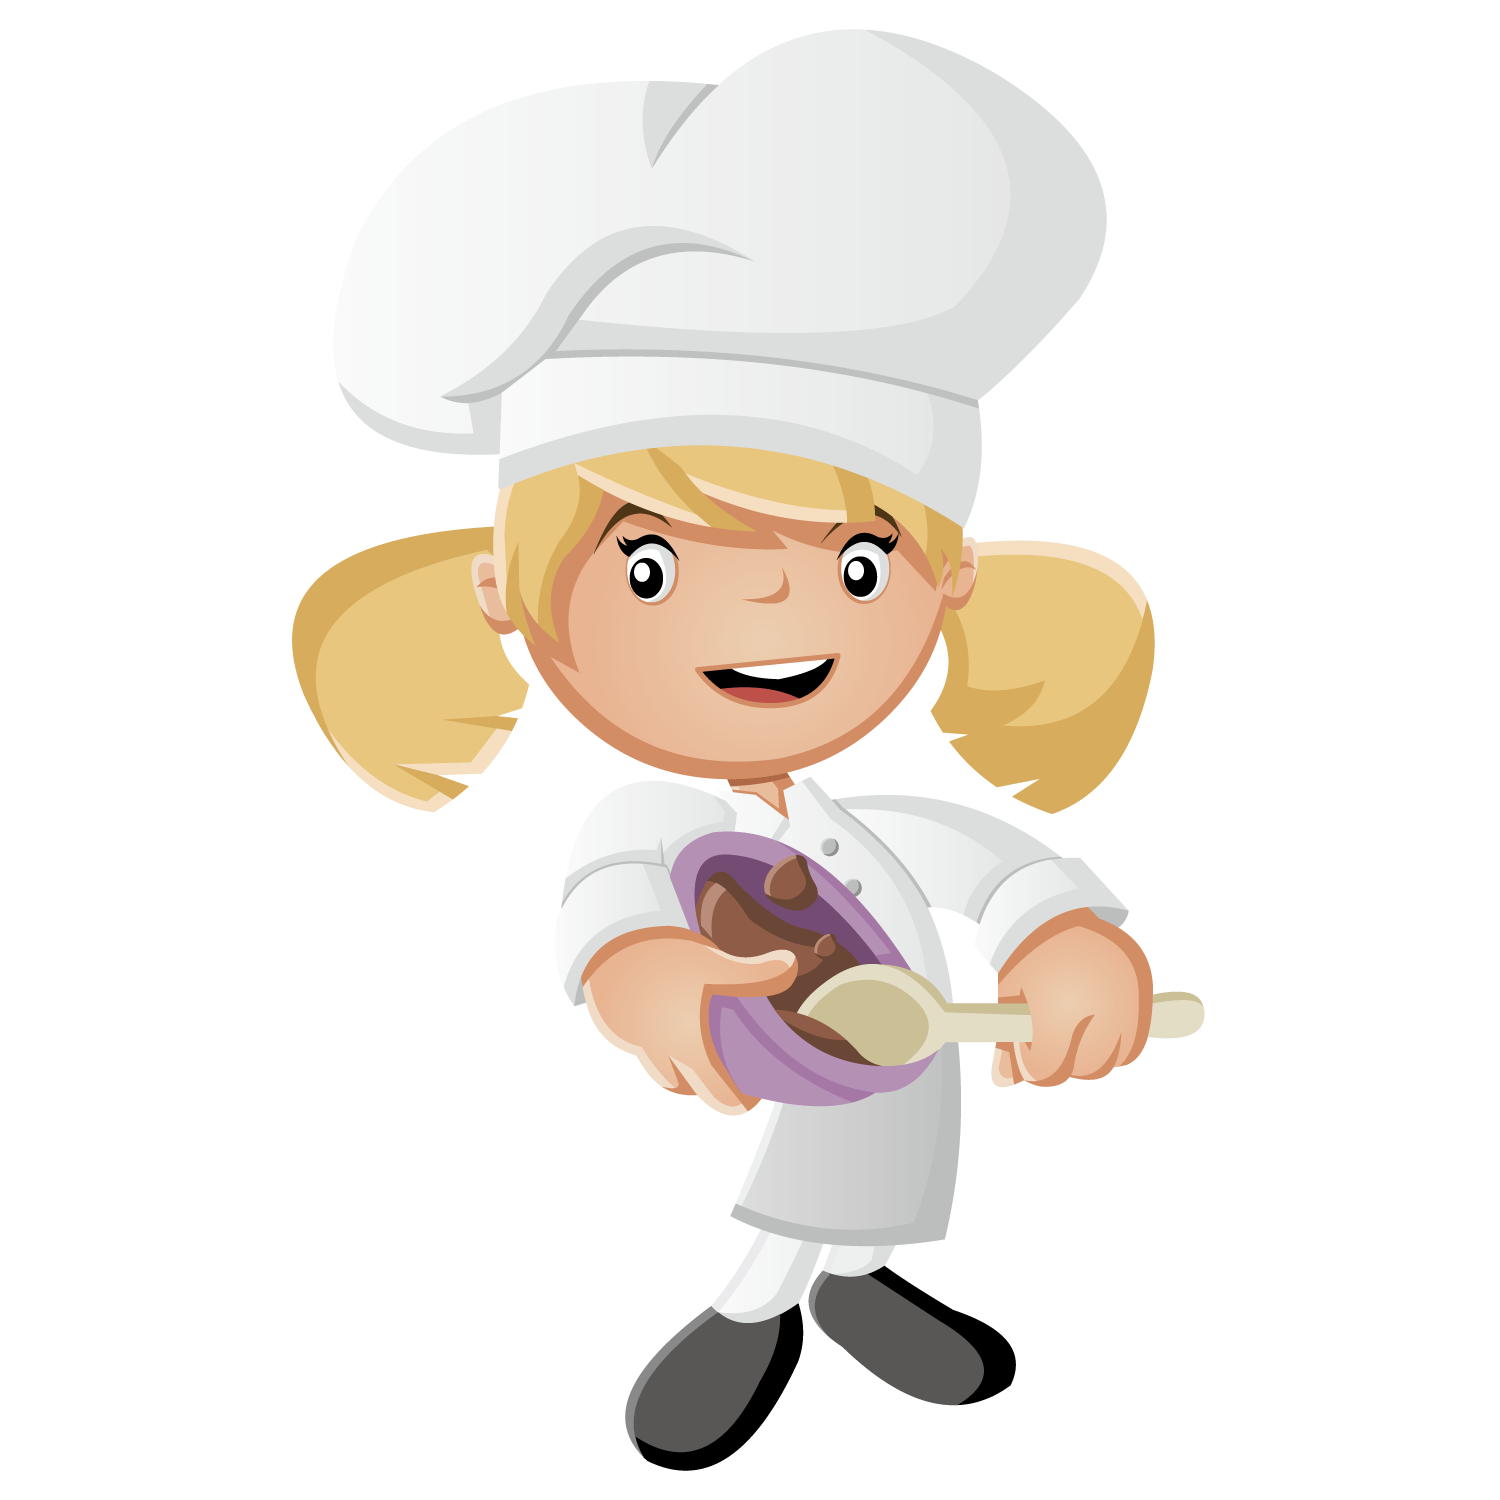 Cooking clipart cook chinese. Chef cartoon illustration cooks